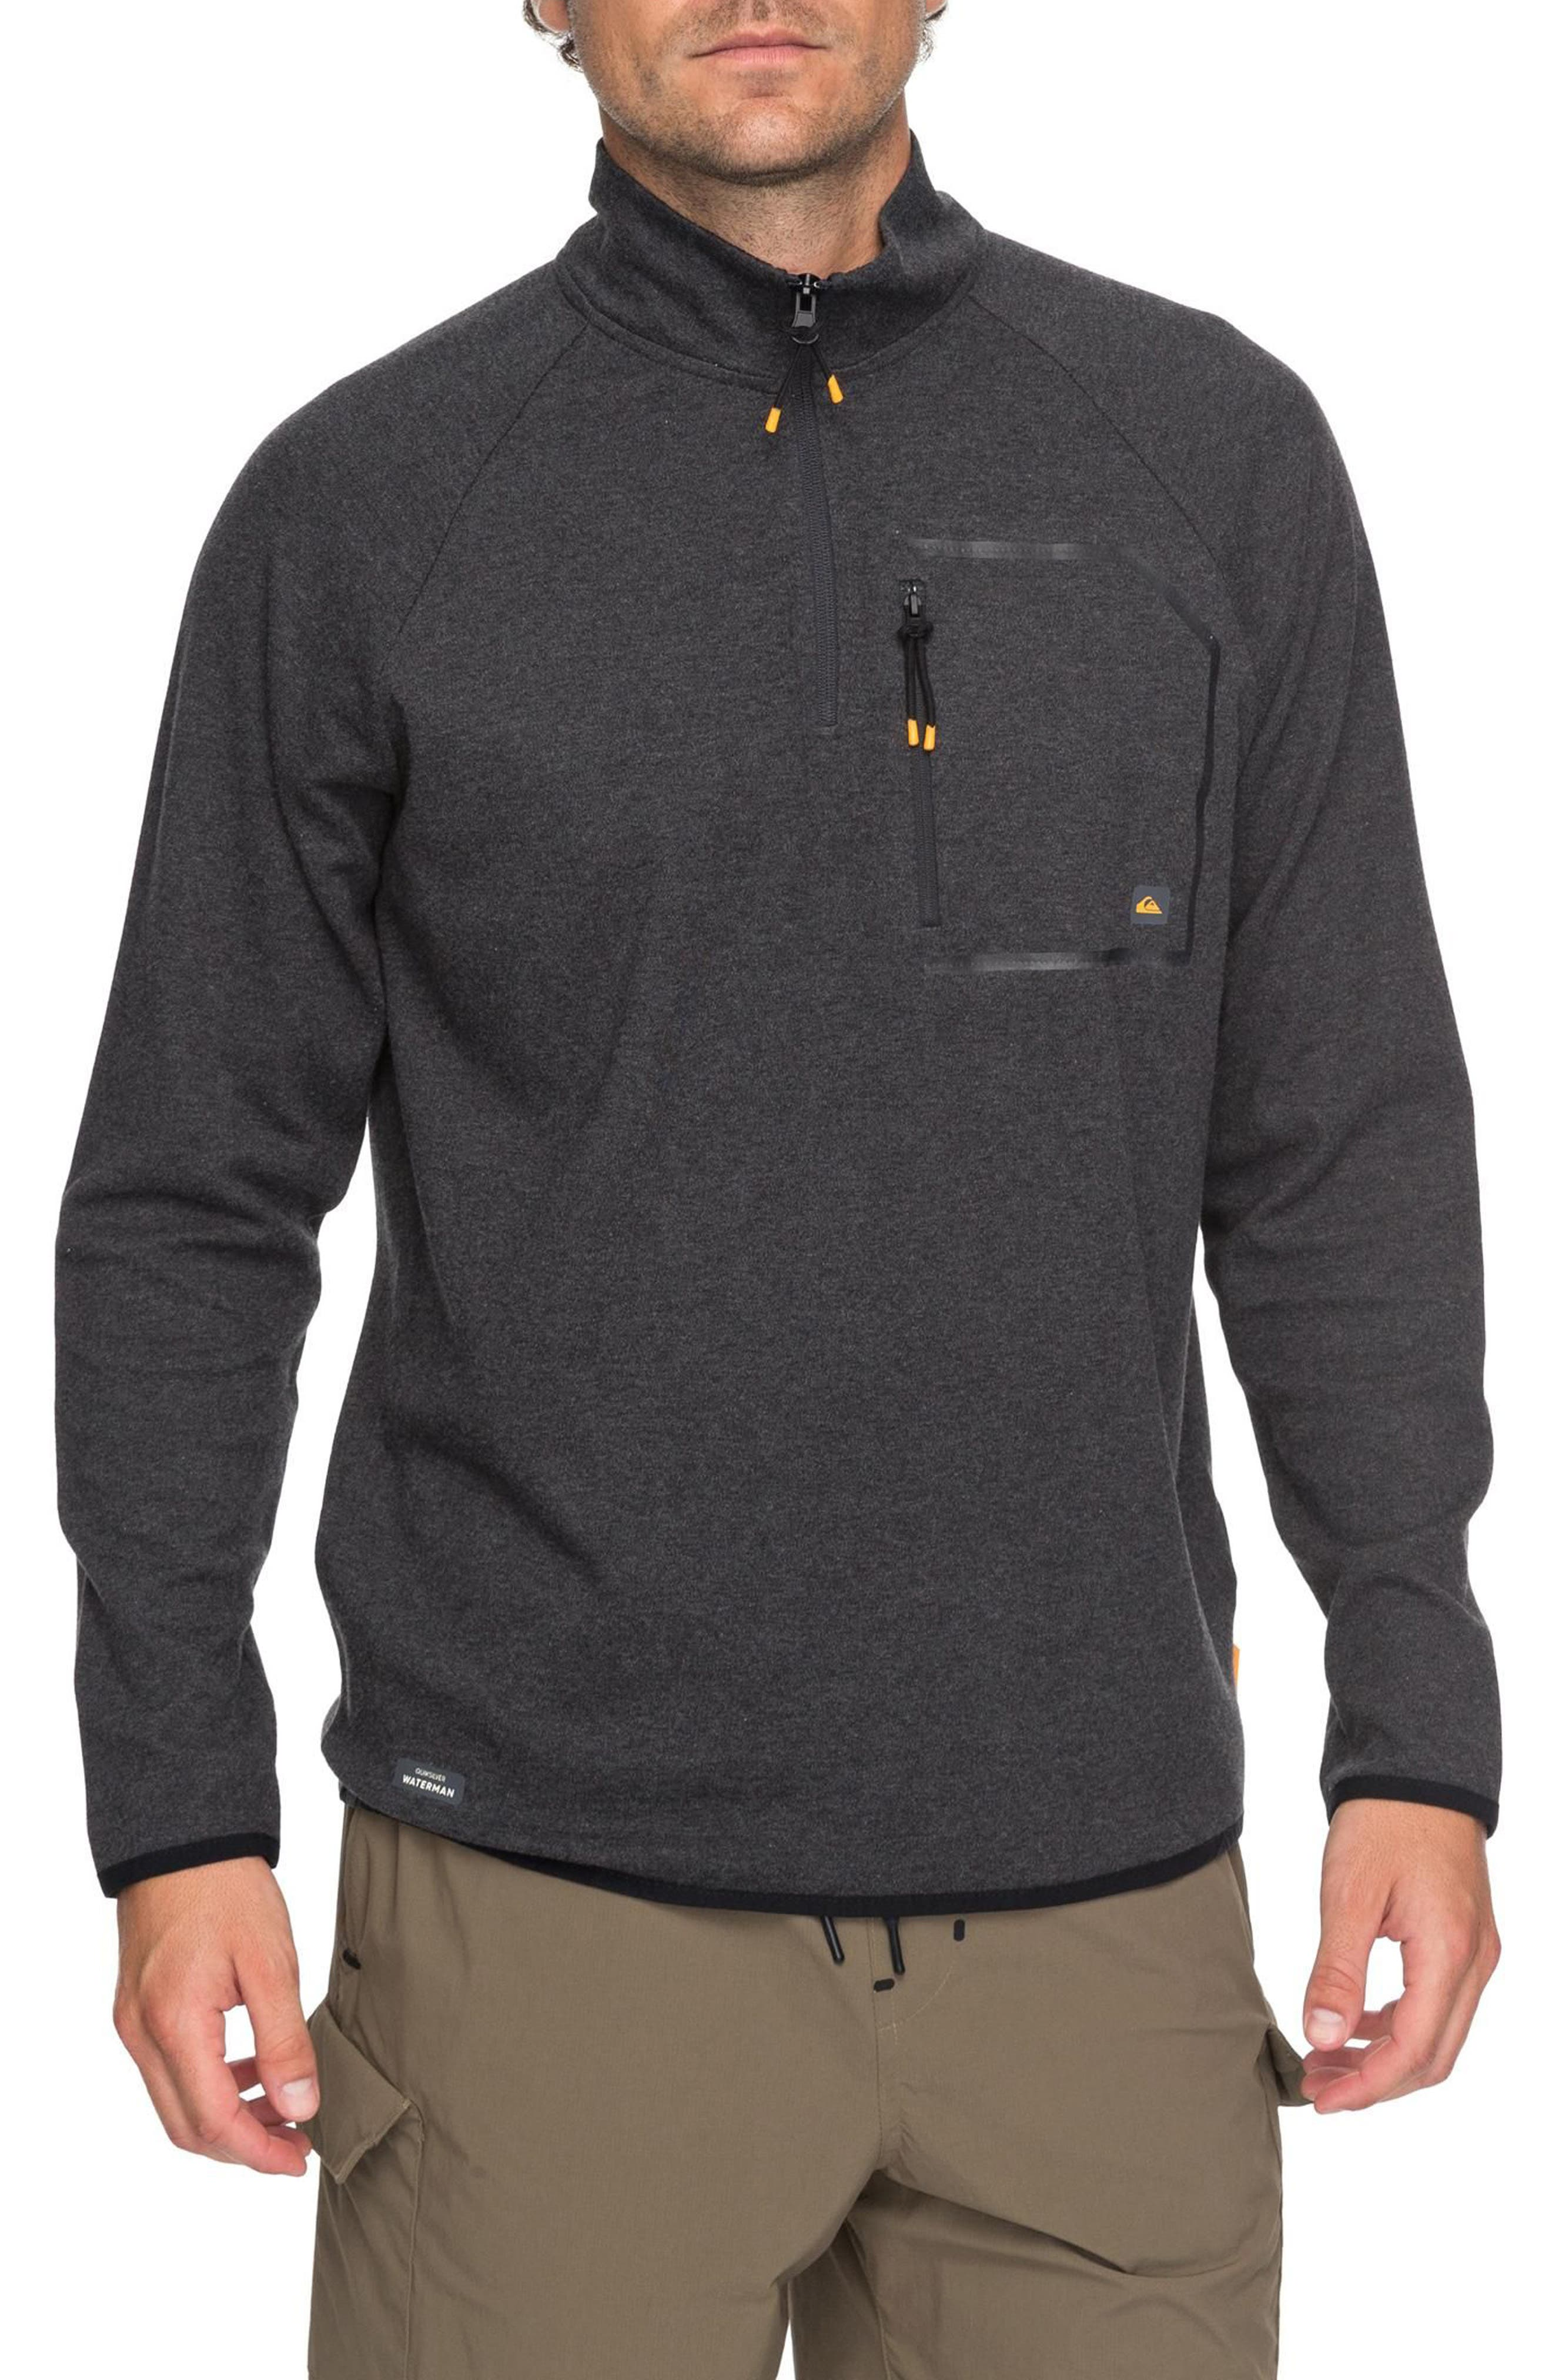 Technical Sweatshirt,                         Main,                         color, Charcoal Heather